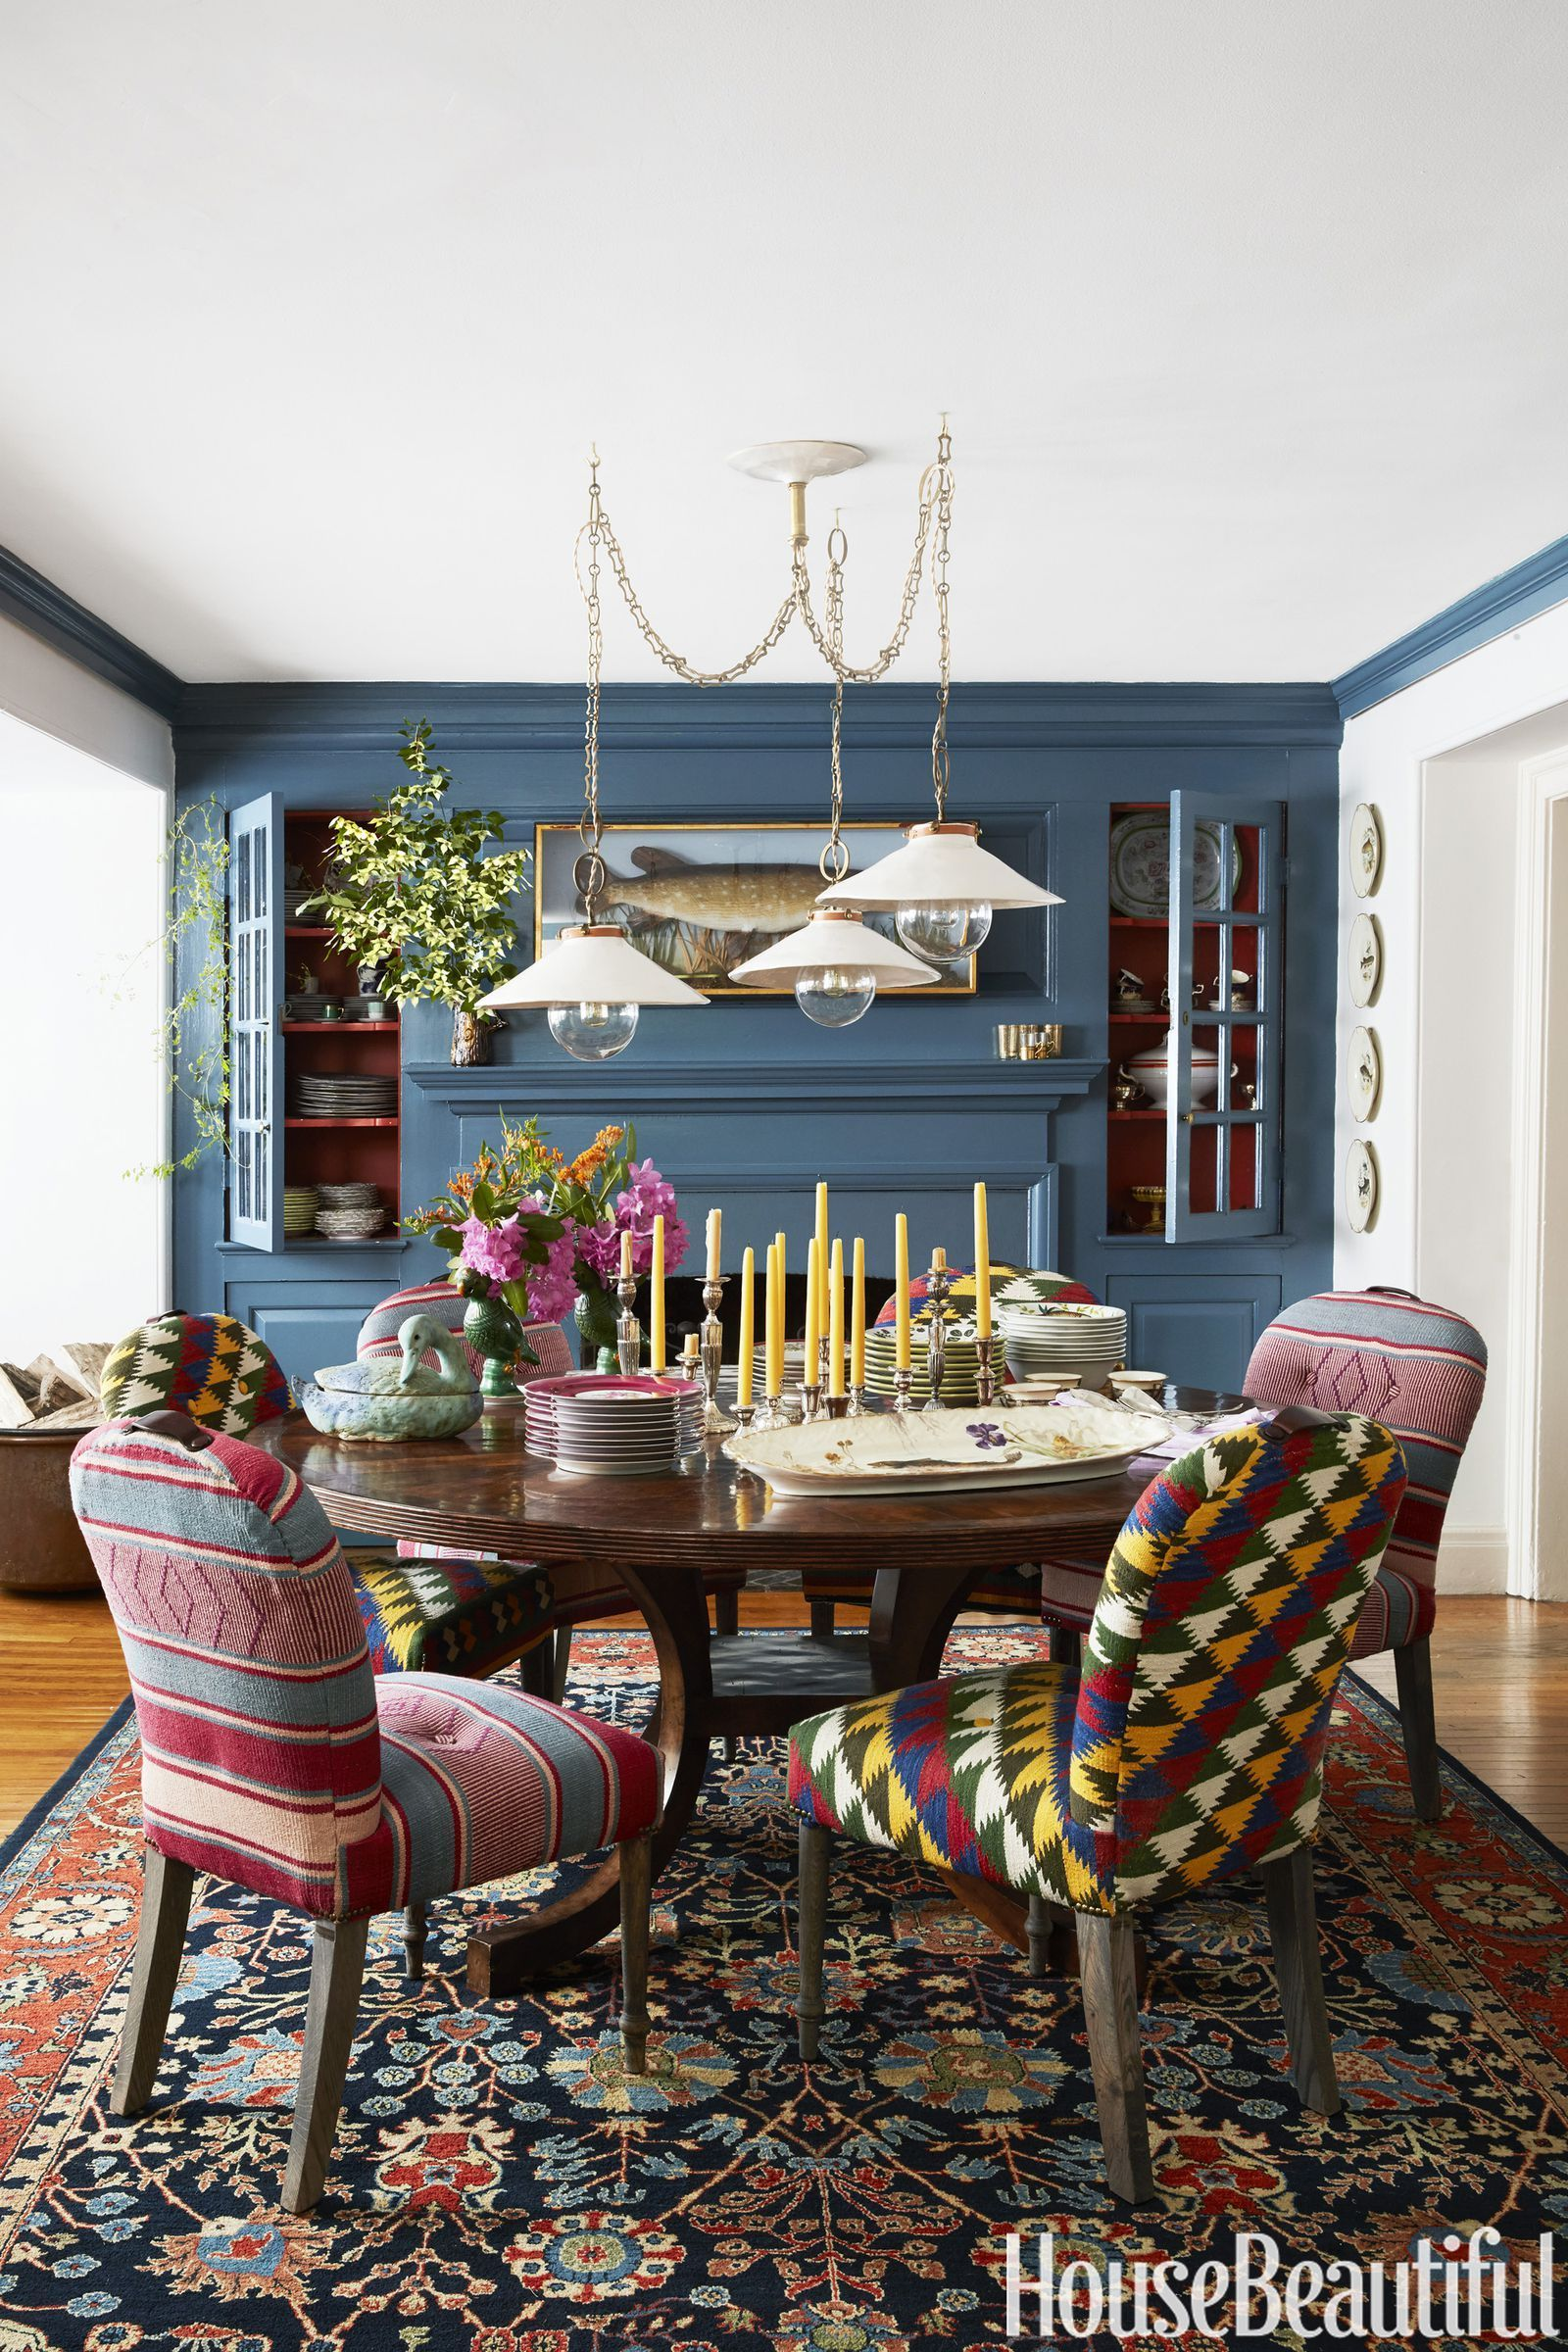 paint color boho chic don t like large fabric chairs in 2019 dining room design beautiful on boho chic dining room kitchen dining tables id=69742